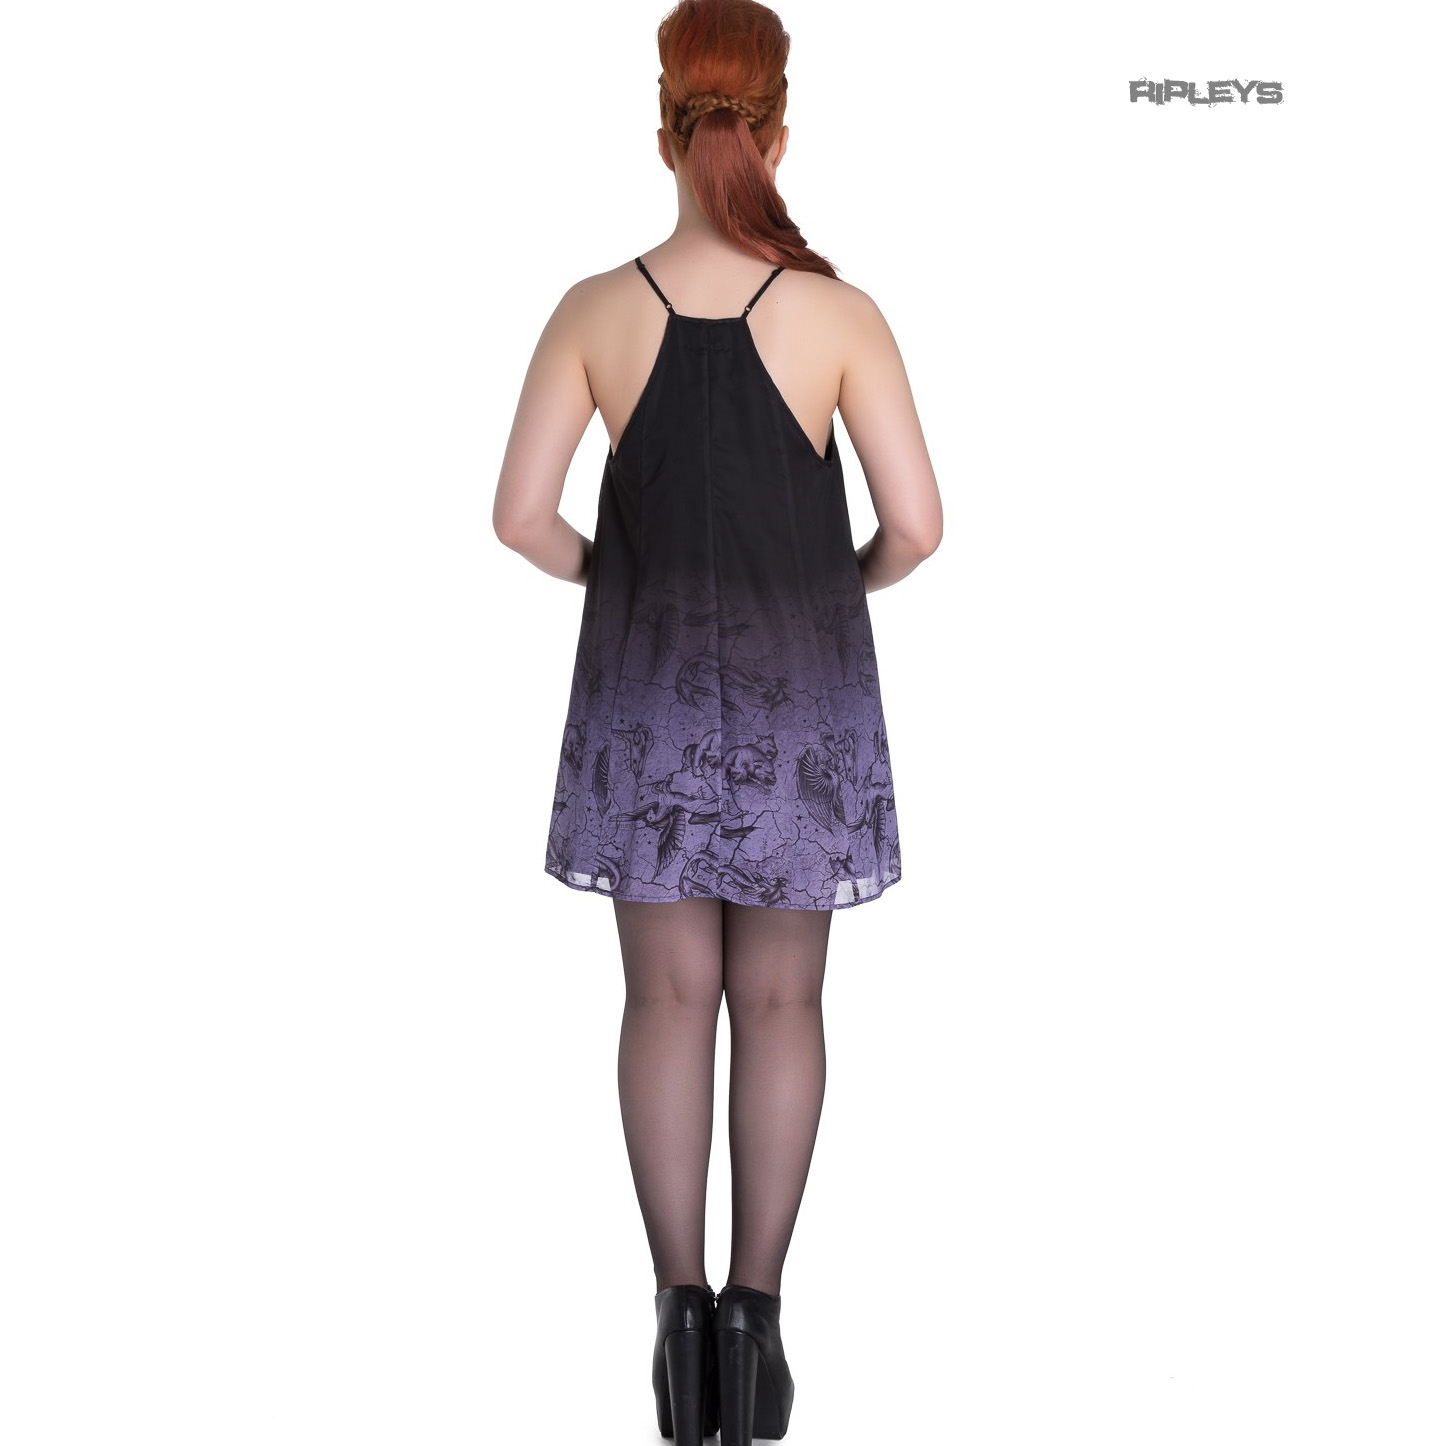 Hell-Bunny-Spin-Doctor-Goth-Lace-Up-Mini-Dress-EVADINE-Purple-Black-All-Sizes thumbnail 16